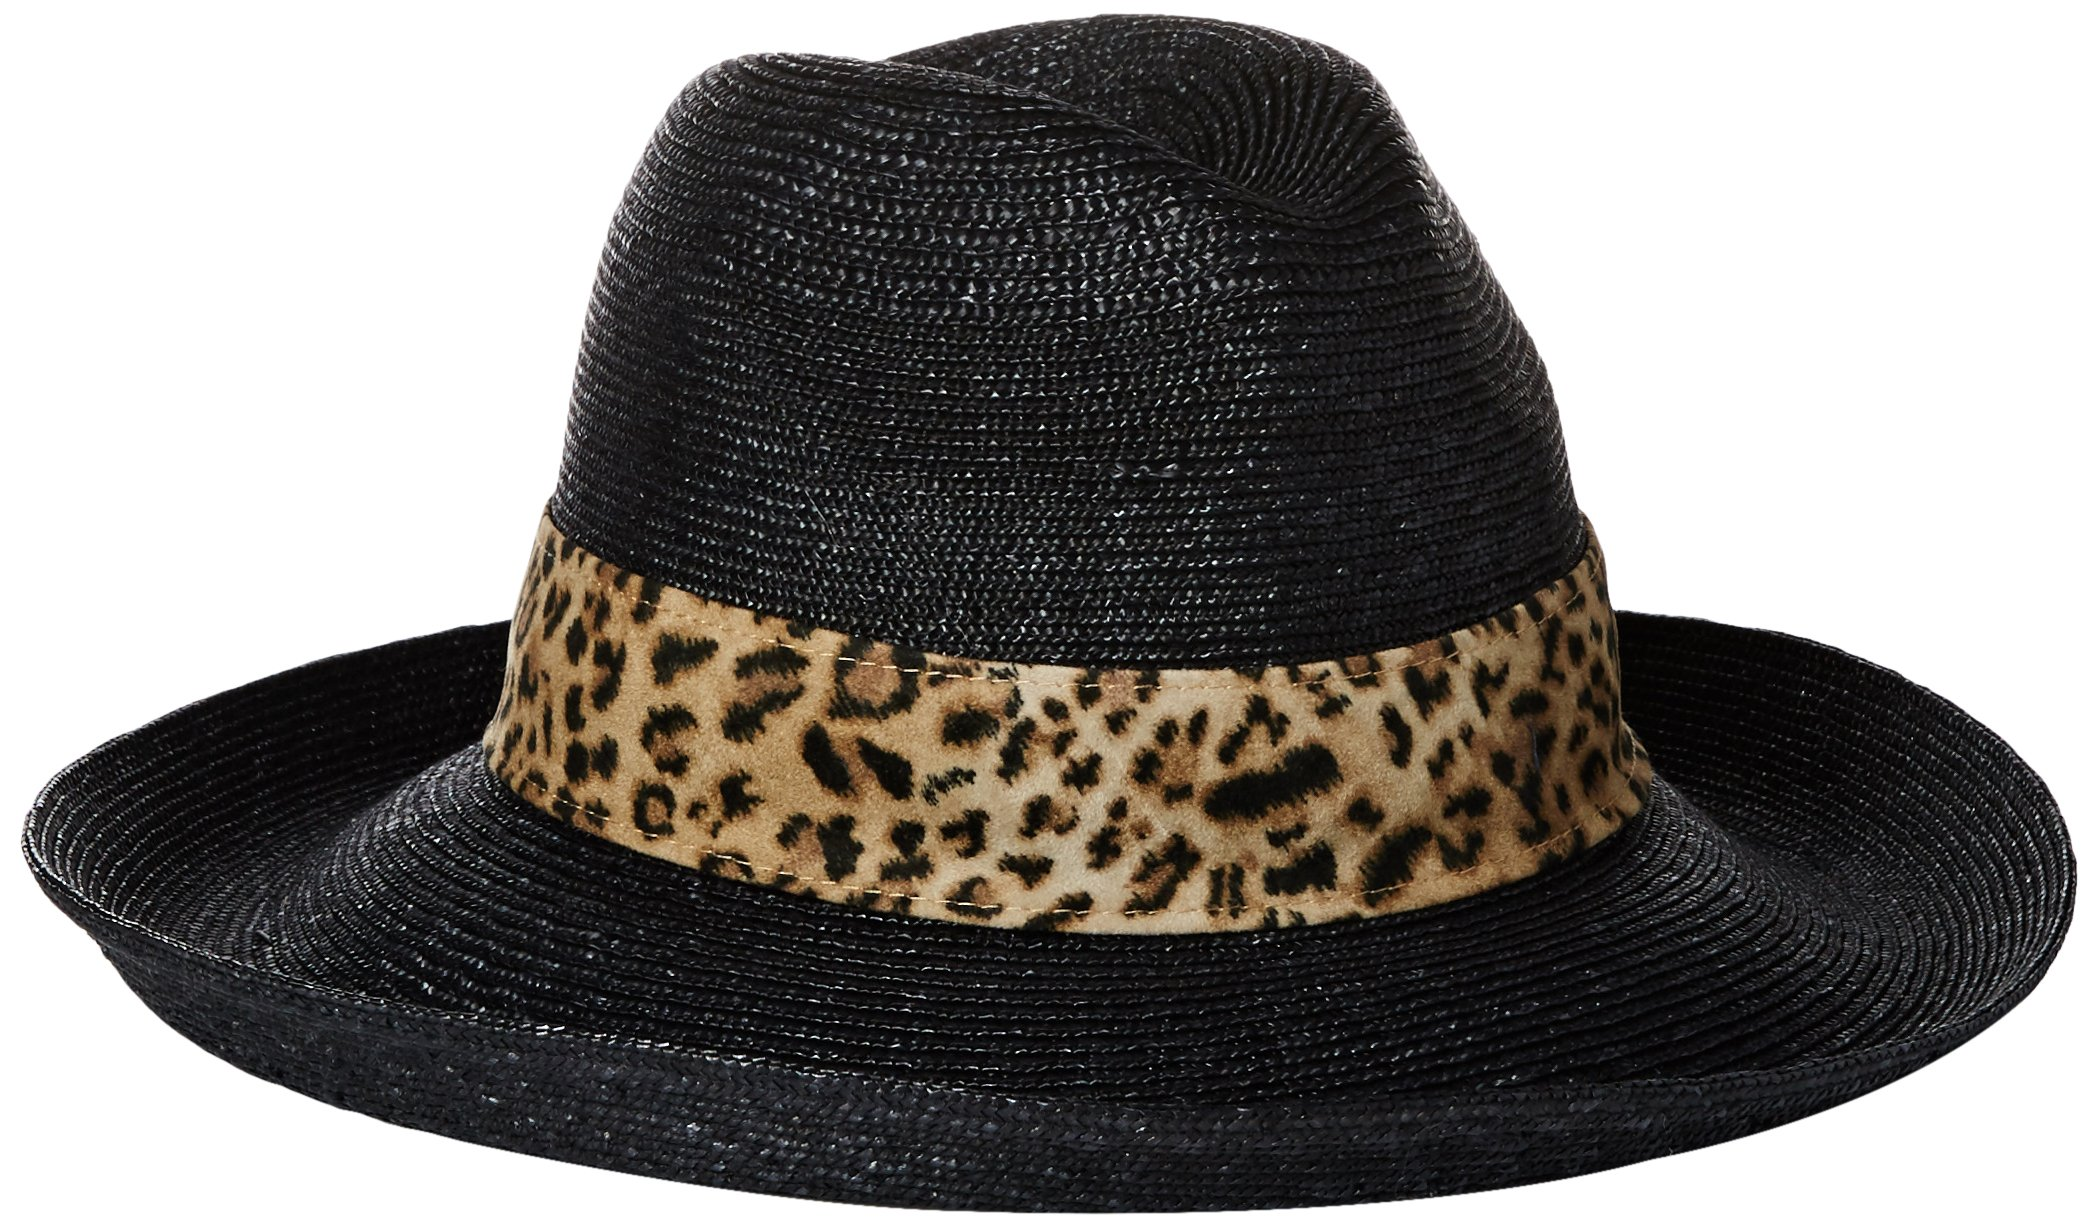 Gottex Women's Jungle Fever Sun Hat, Rated UPF 50+ For Max Sun Protection, Black/Leopard, One Size